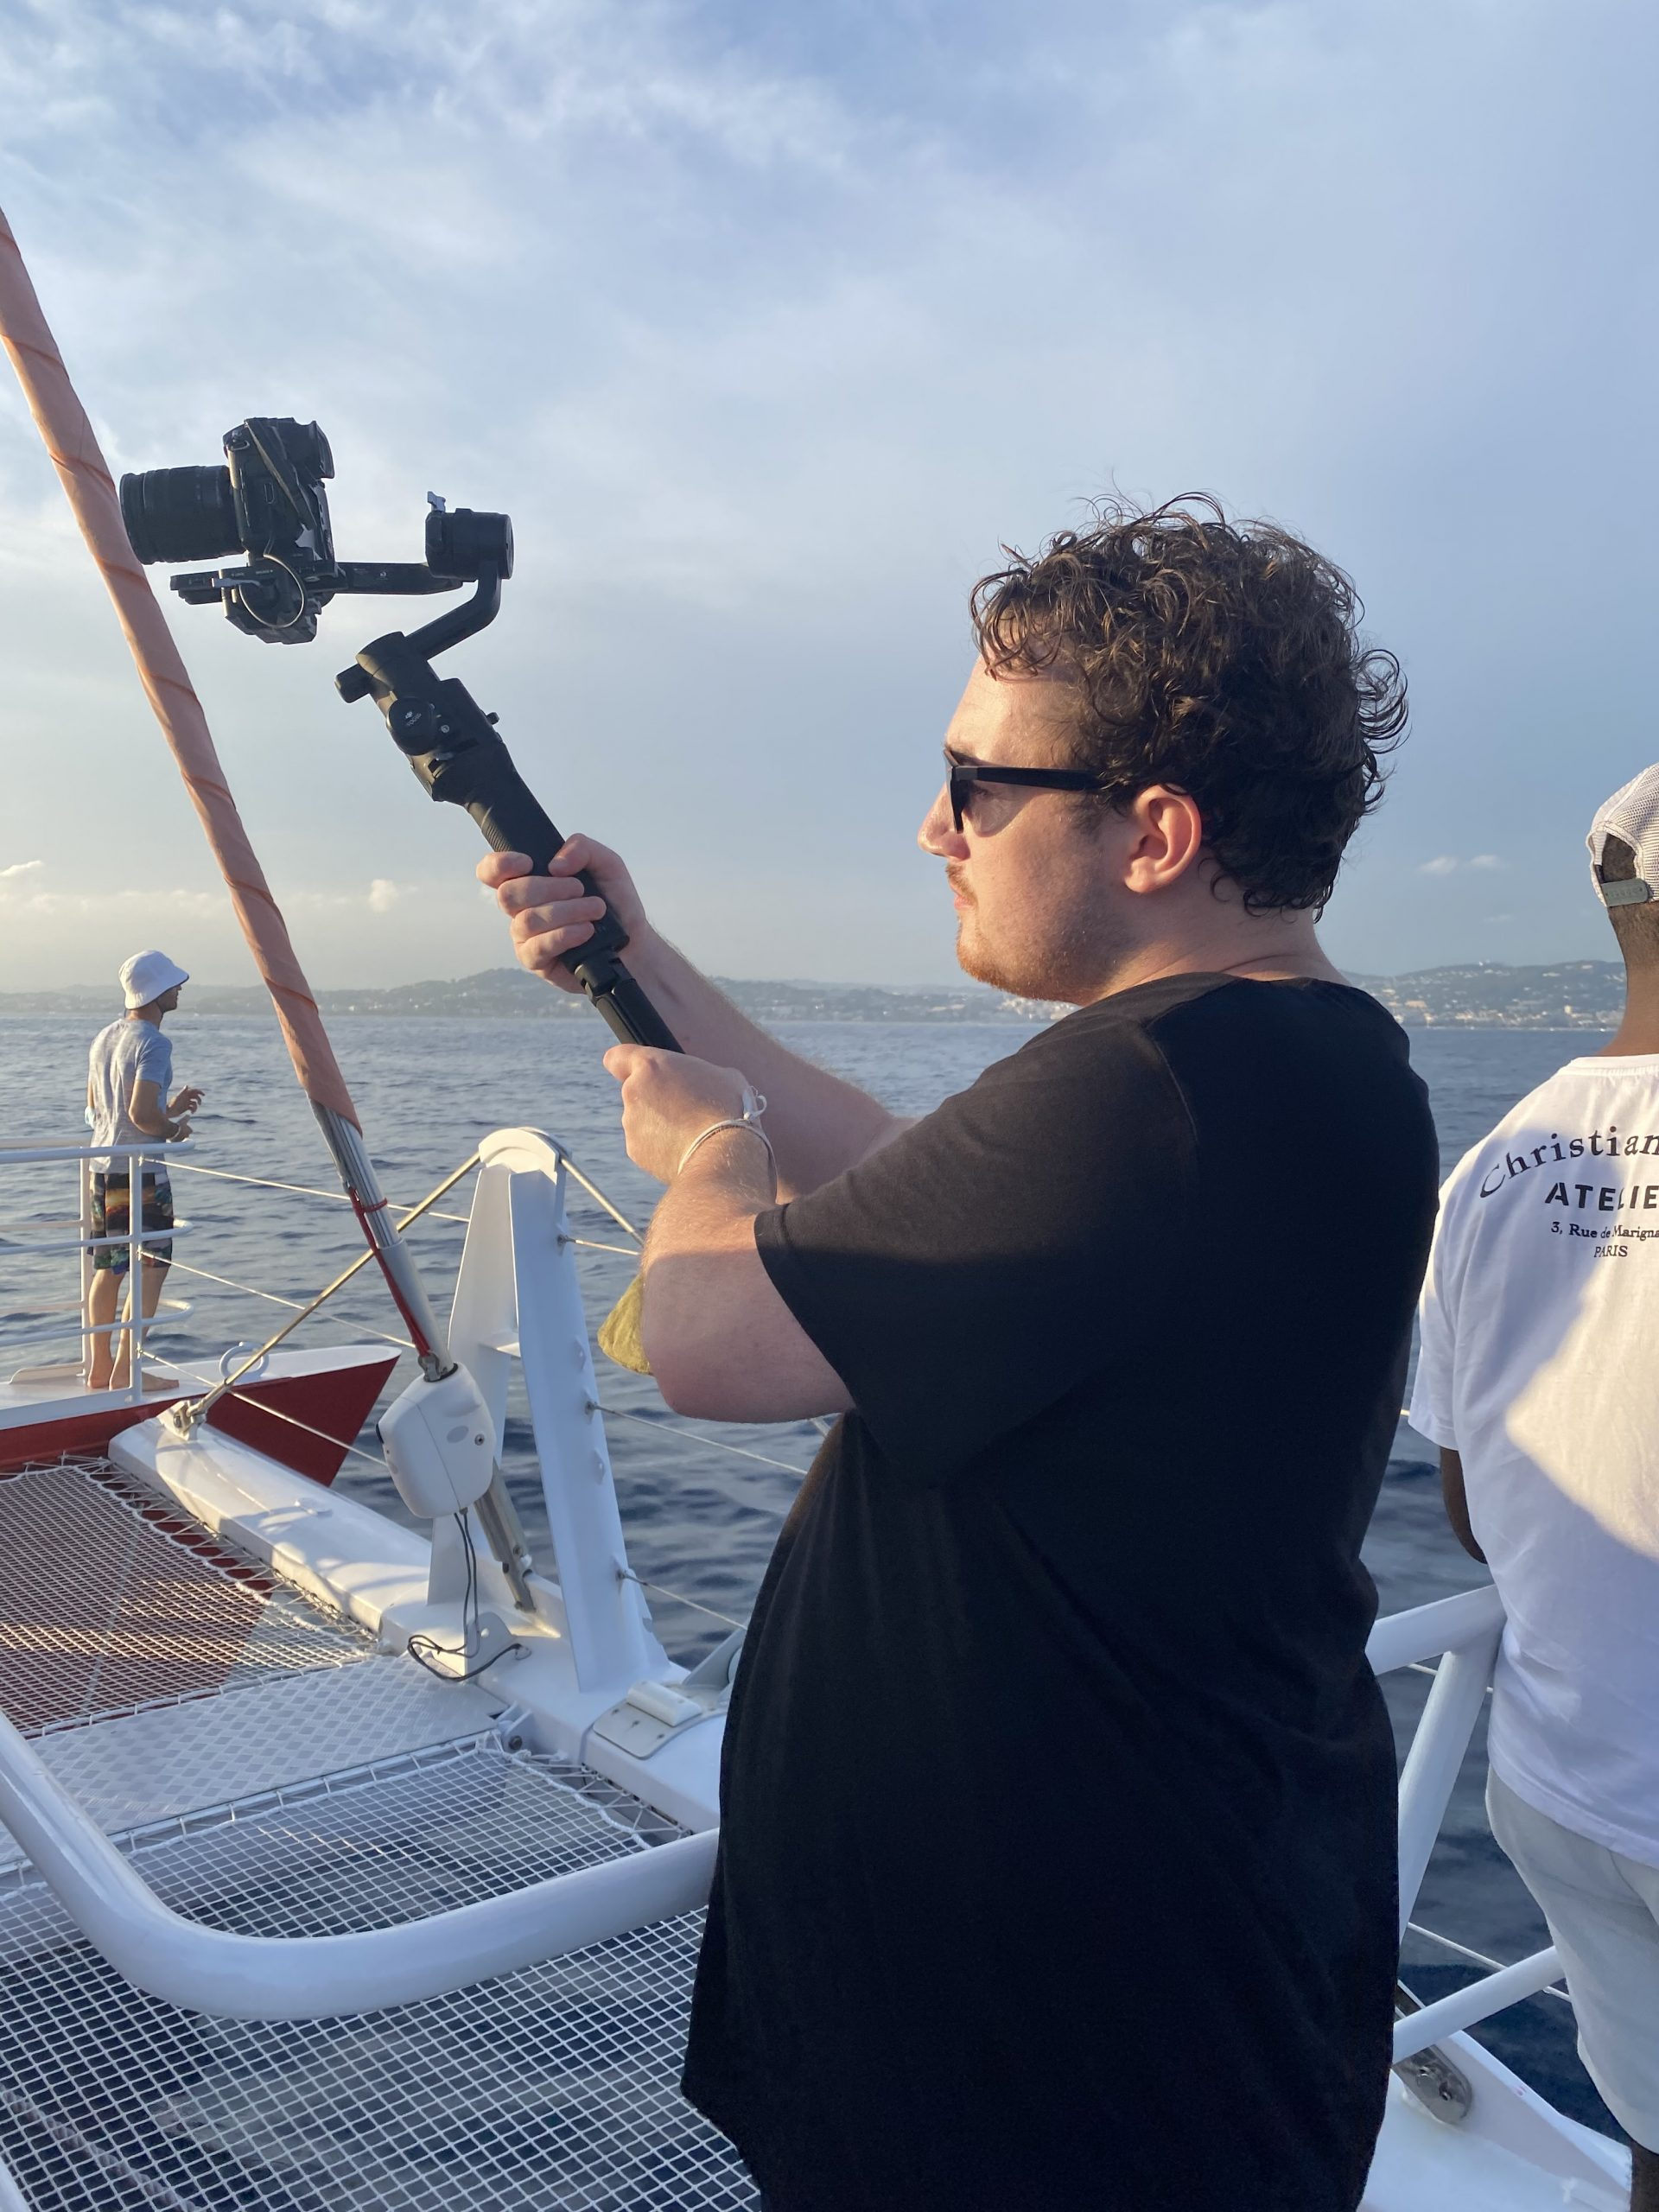 Loving filming a boat party